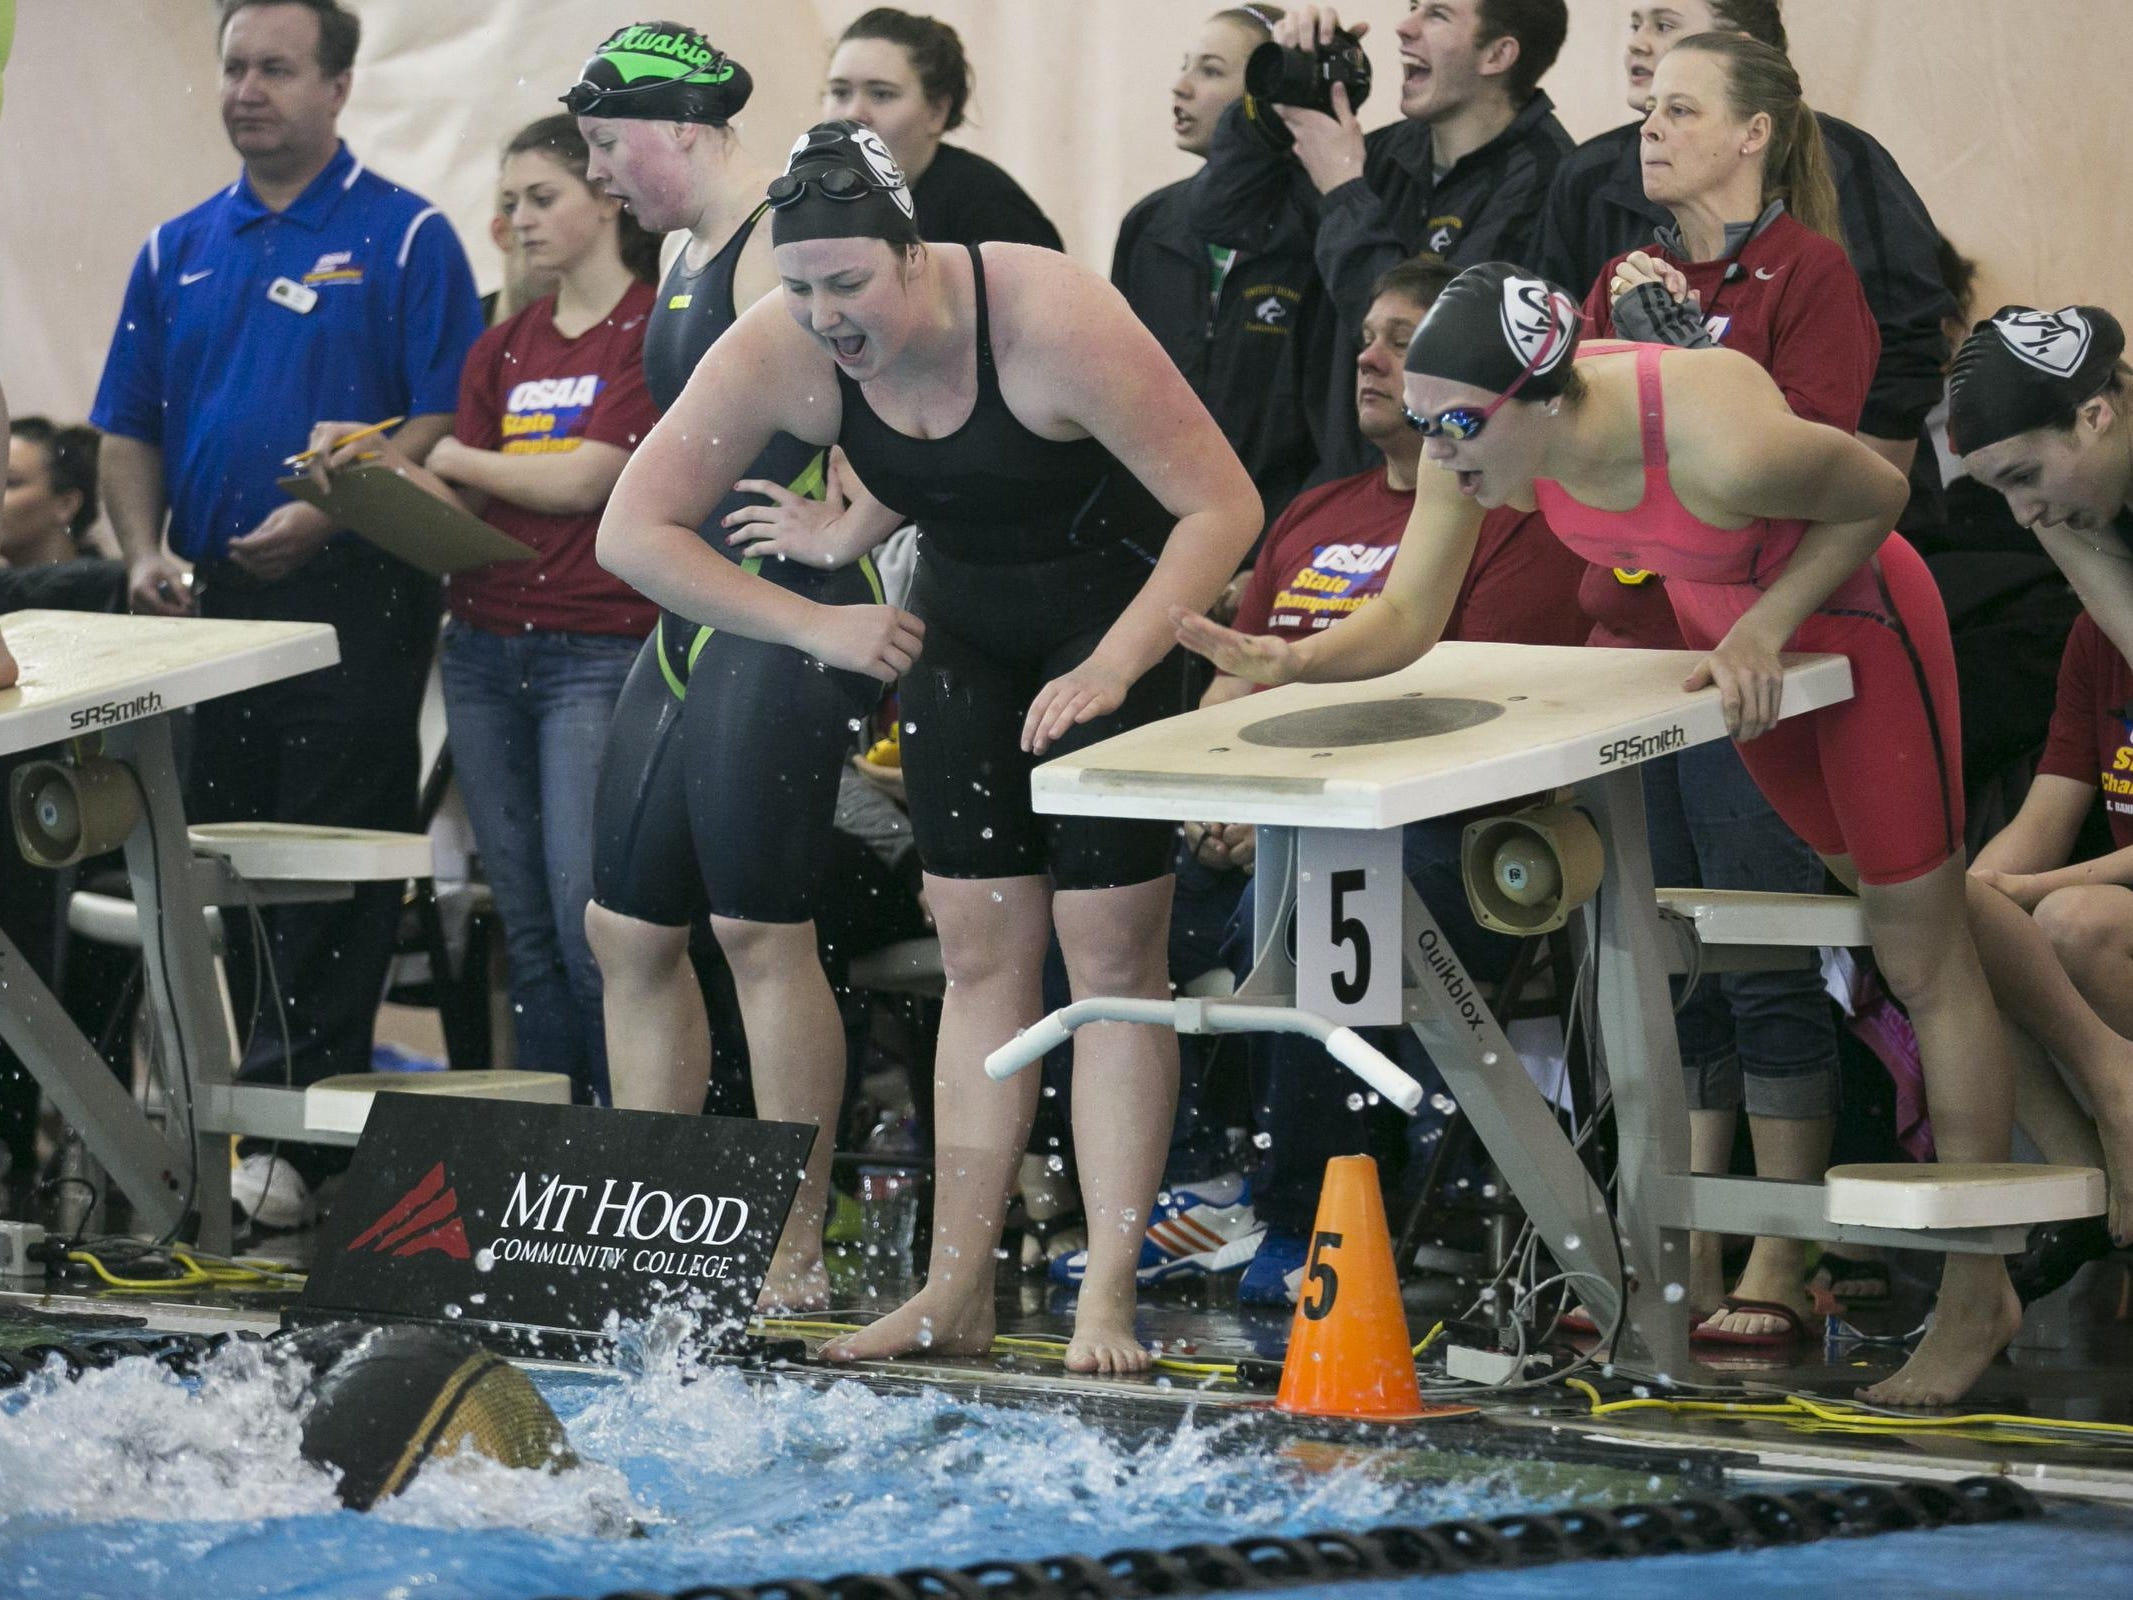 Kiera Supple (left) and Emma Boles (right) cheer as teammate Callie Hinson swims the girls 400 yard free relay for Salem Academy at the OSAA Swimming State Championships at Mount Hood Community College on Saturday, Feb. 20, 2016.